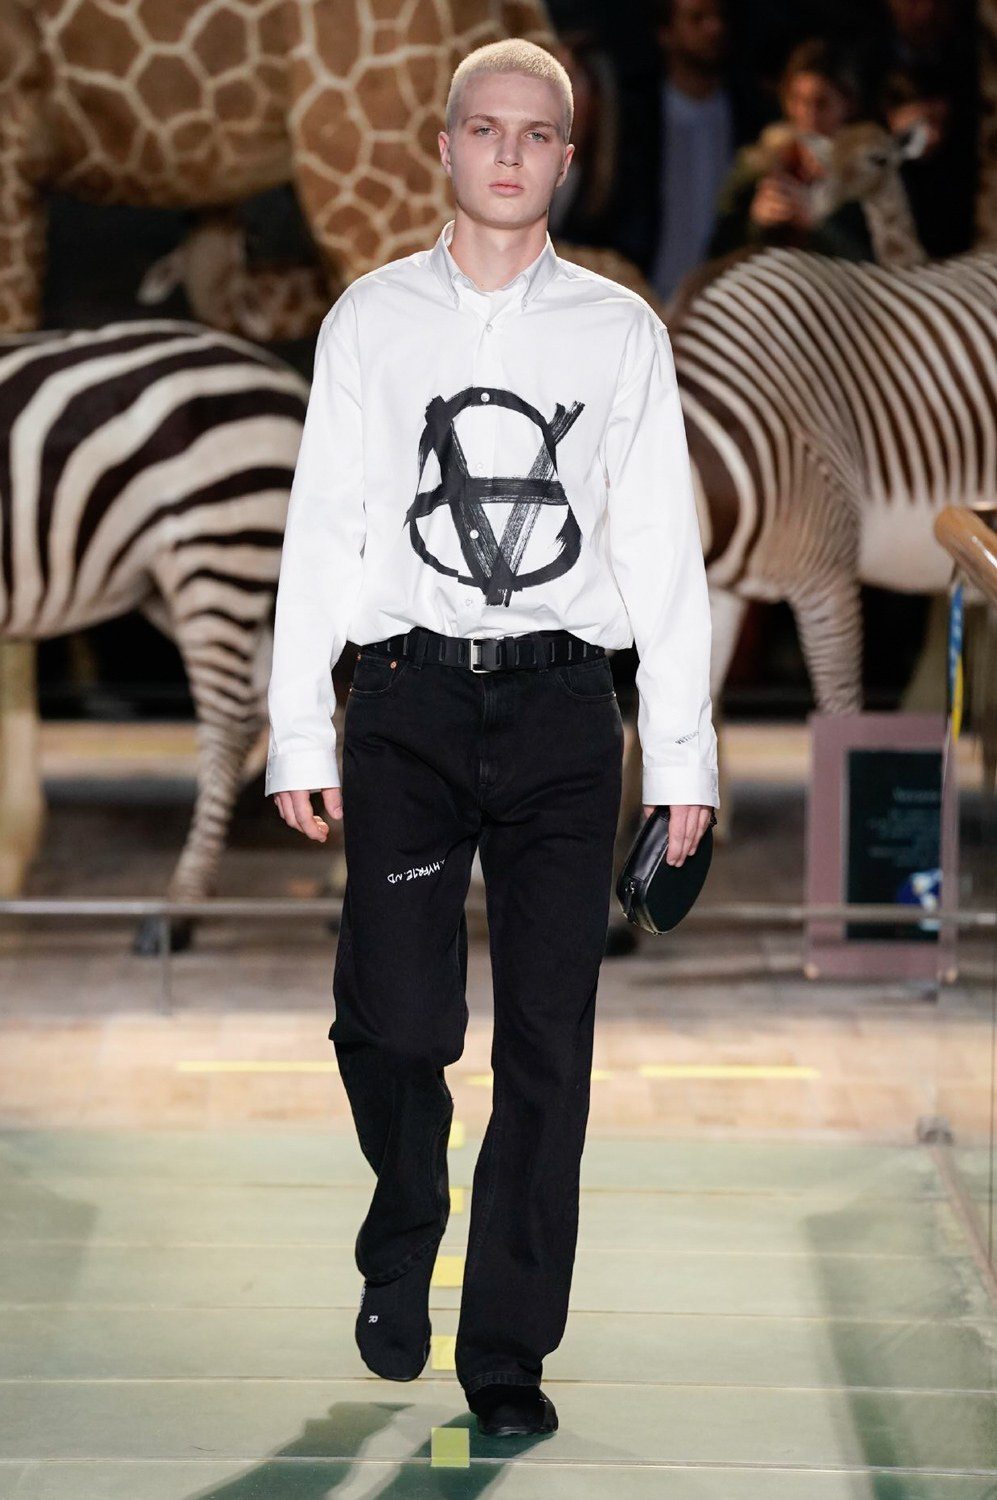 https---vetements-aw19-dtf-magazine.com-image-2019-01-vetements-fall-winter-2019-paris-fashion-week-02